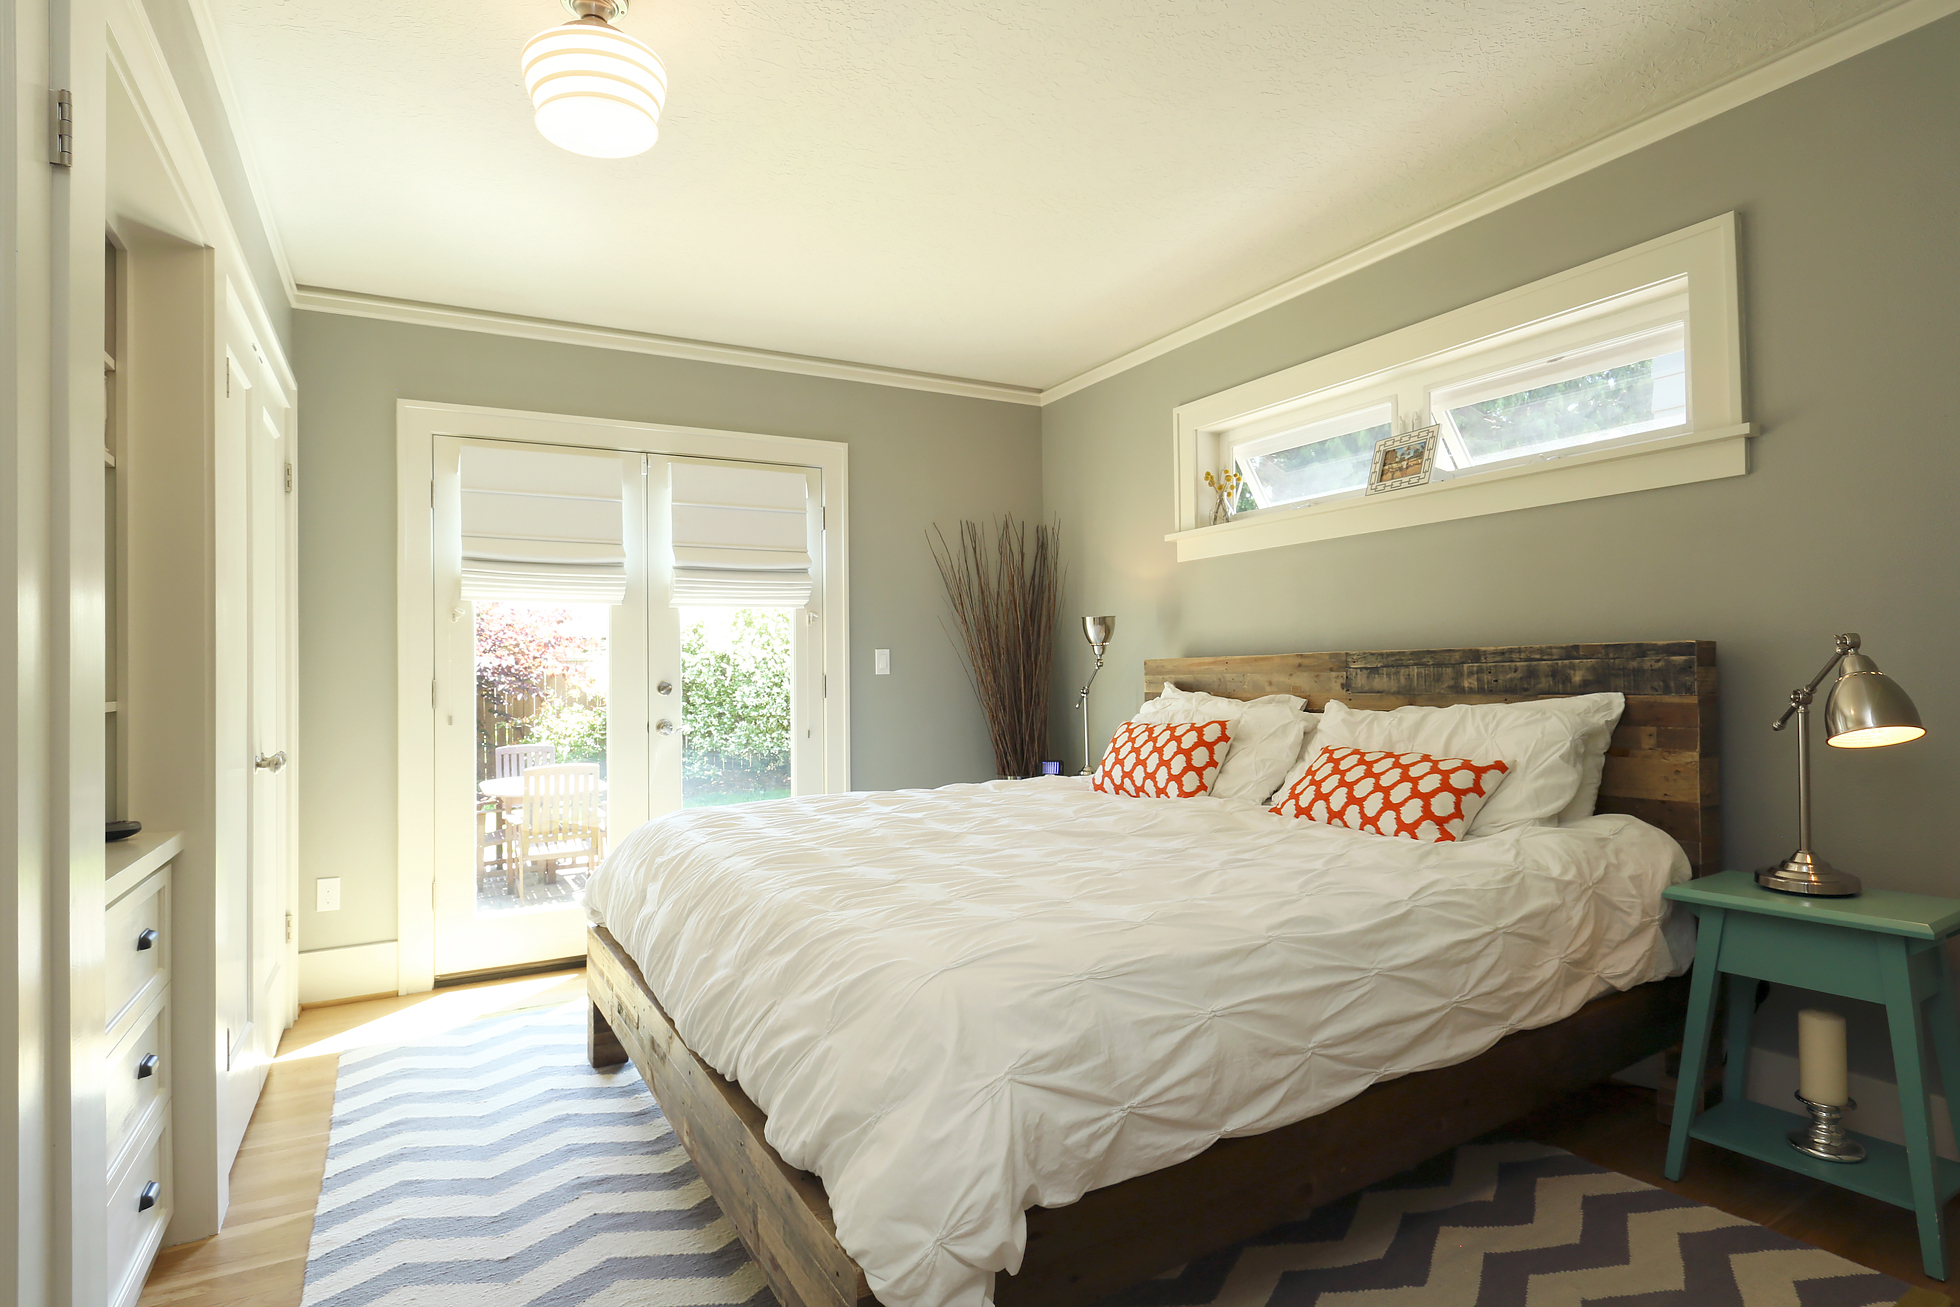 Bright bedroom with white bedspread and orange pillows